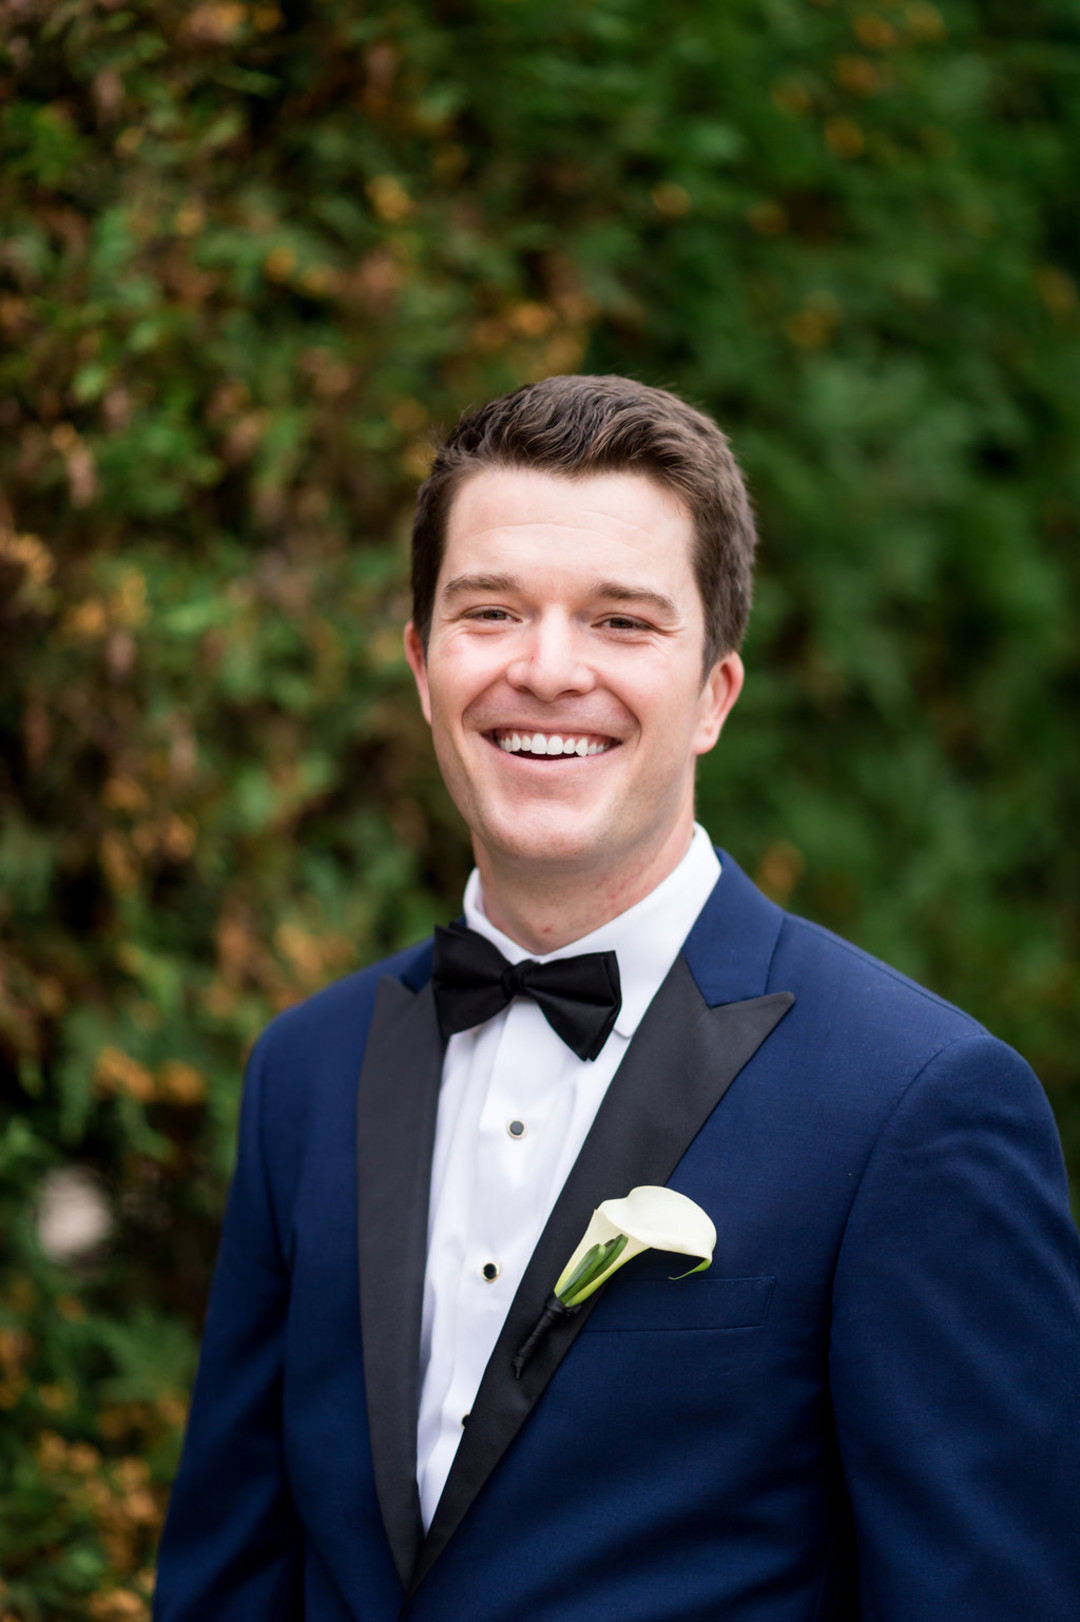 Navy and Black Groom's Suit Chicago Wedding Julia Franzosa Photography